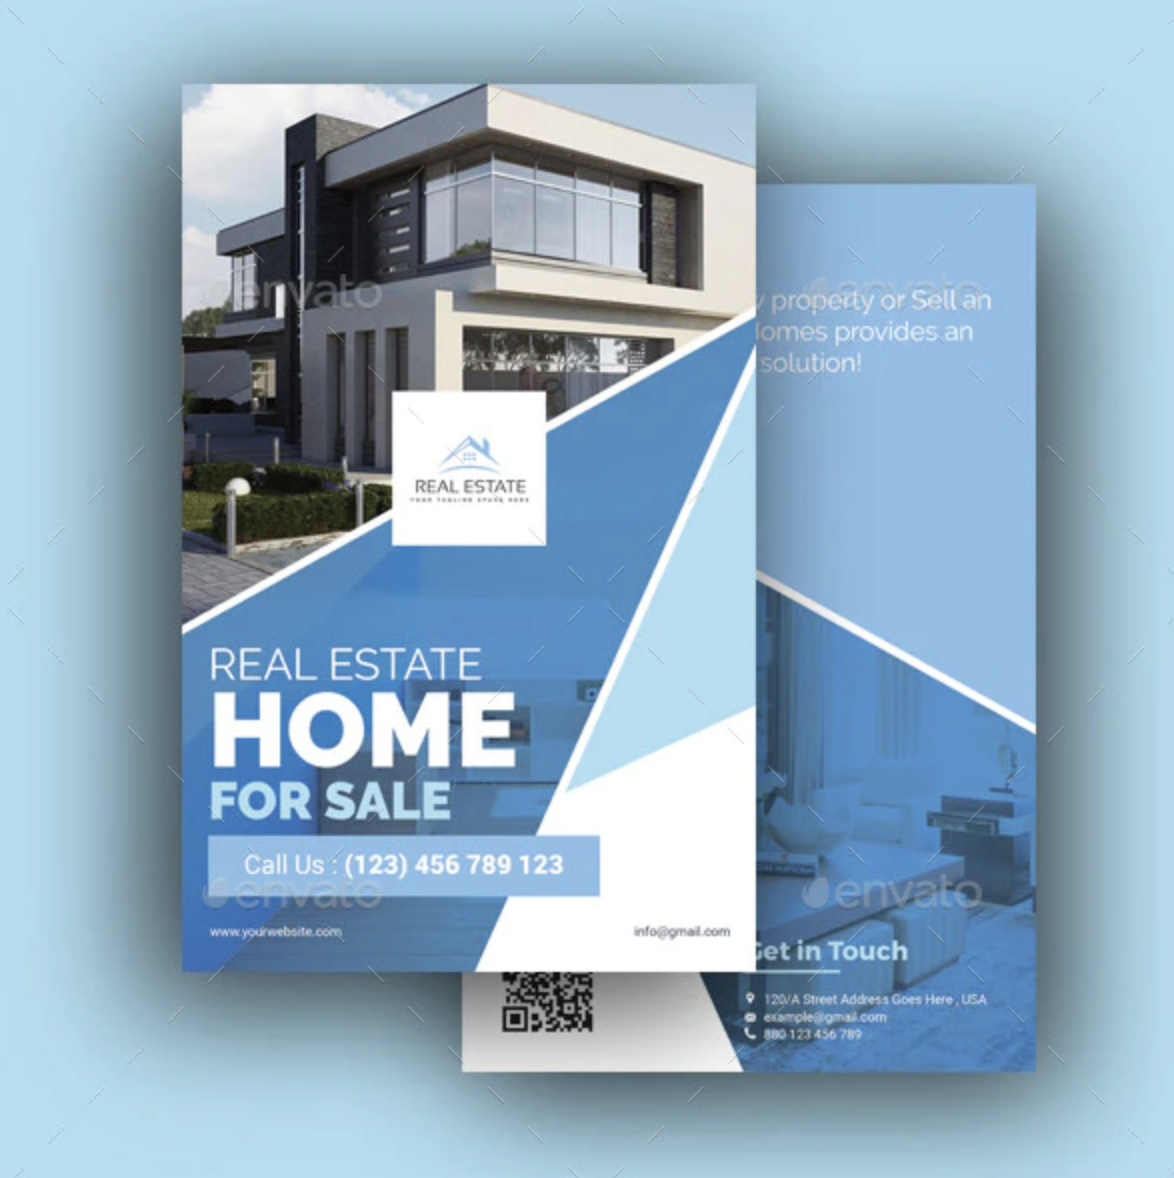 Real Estate Brochure by Themexone